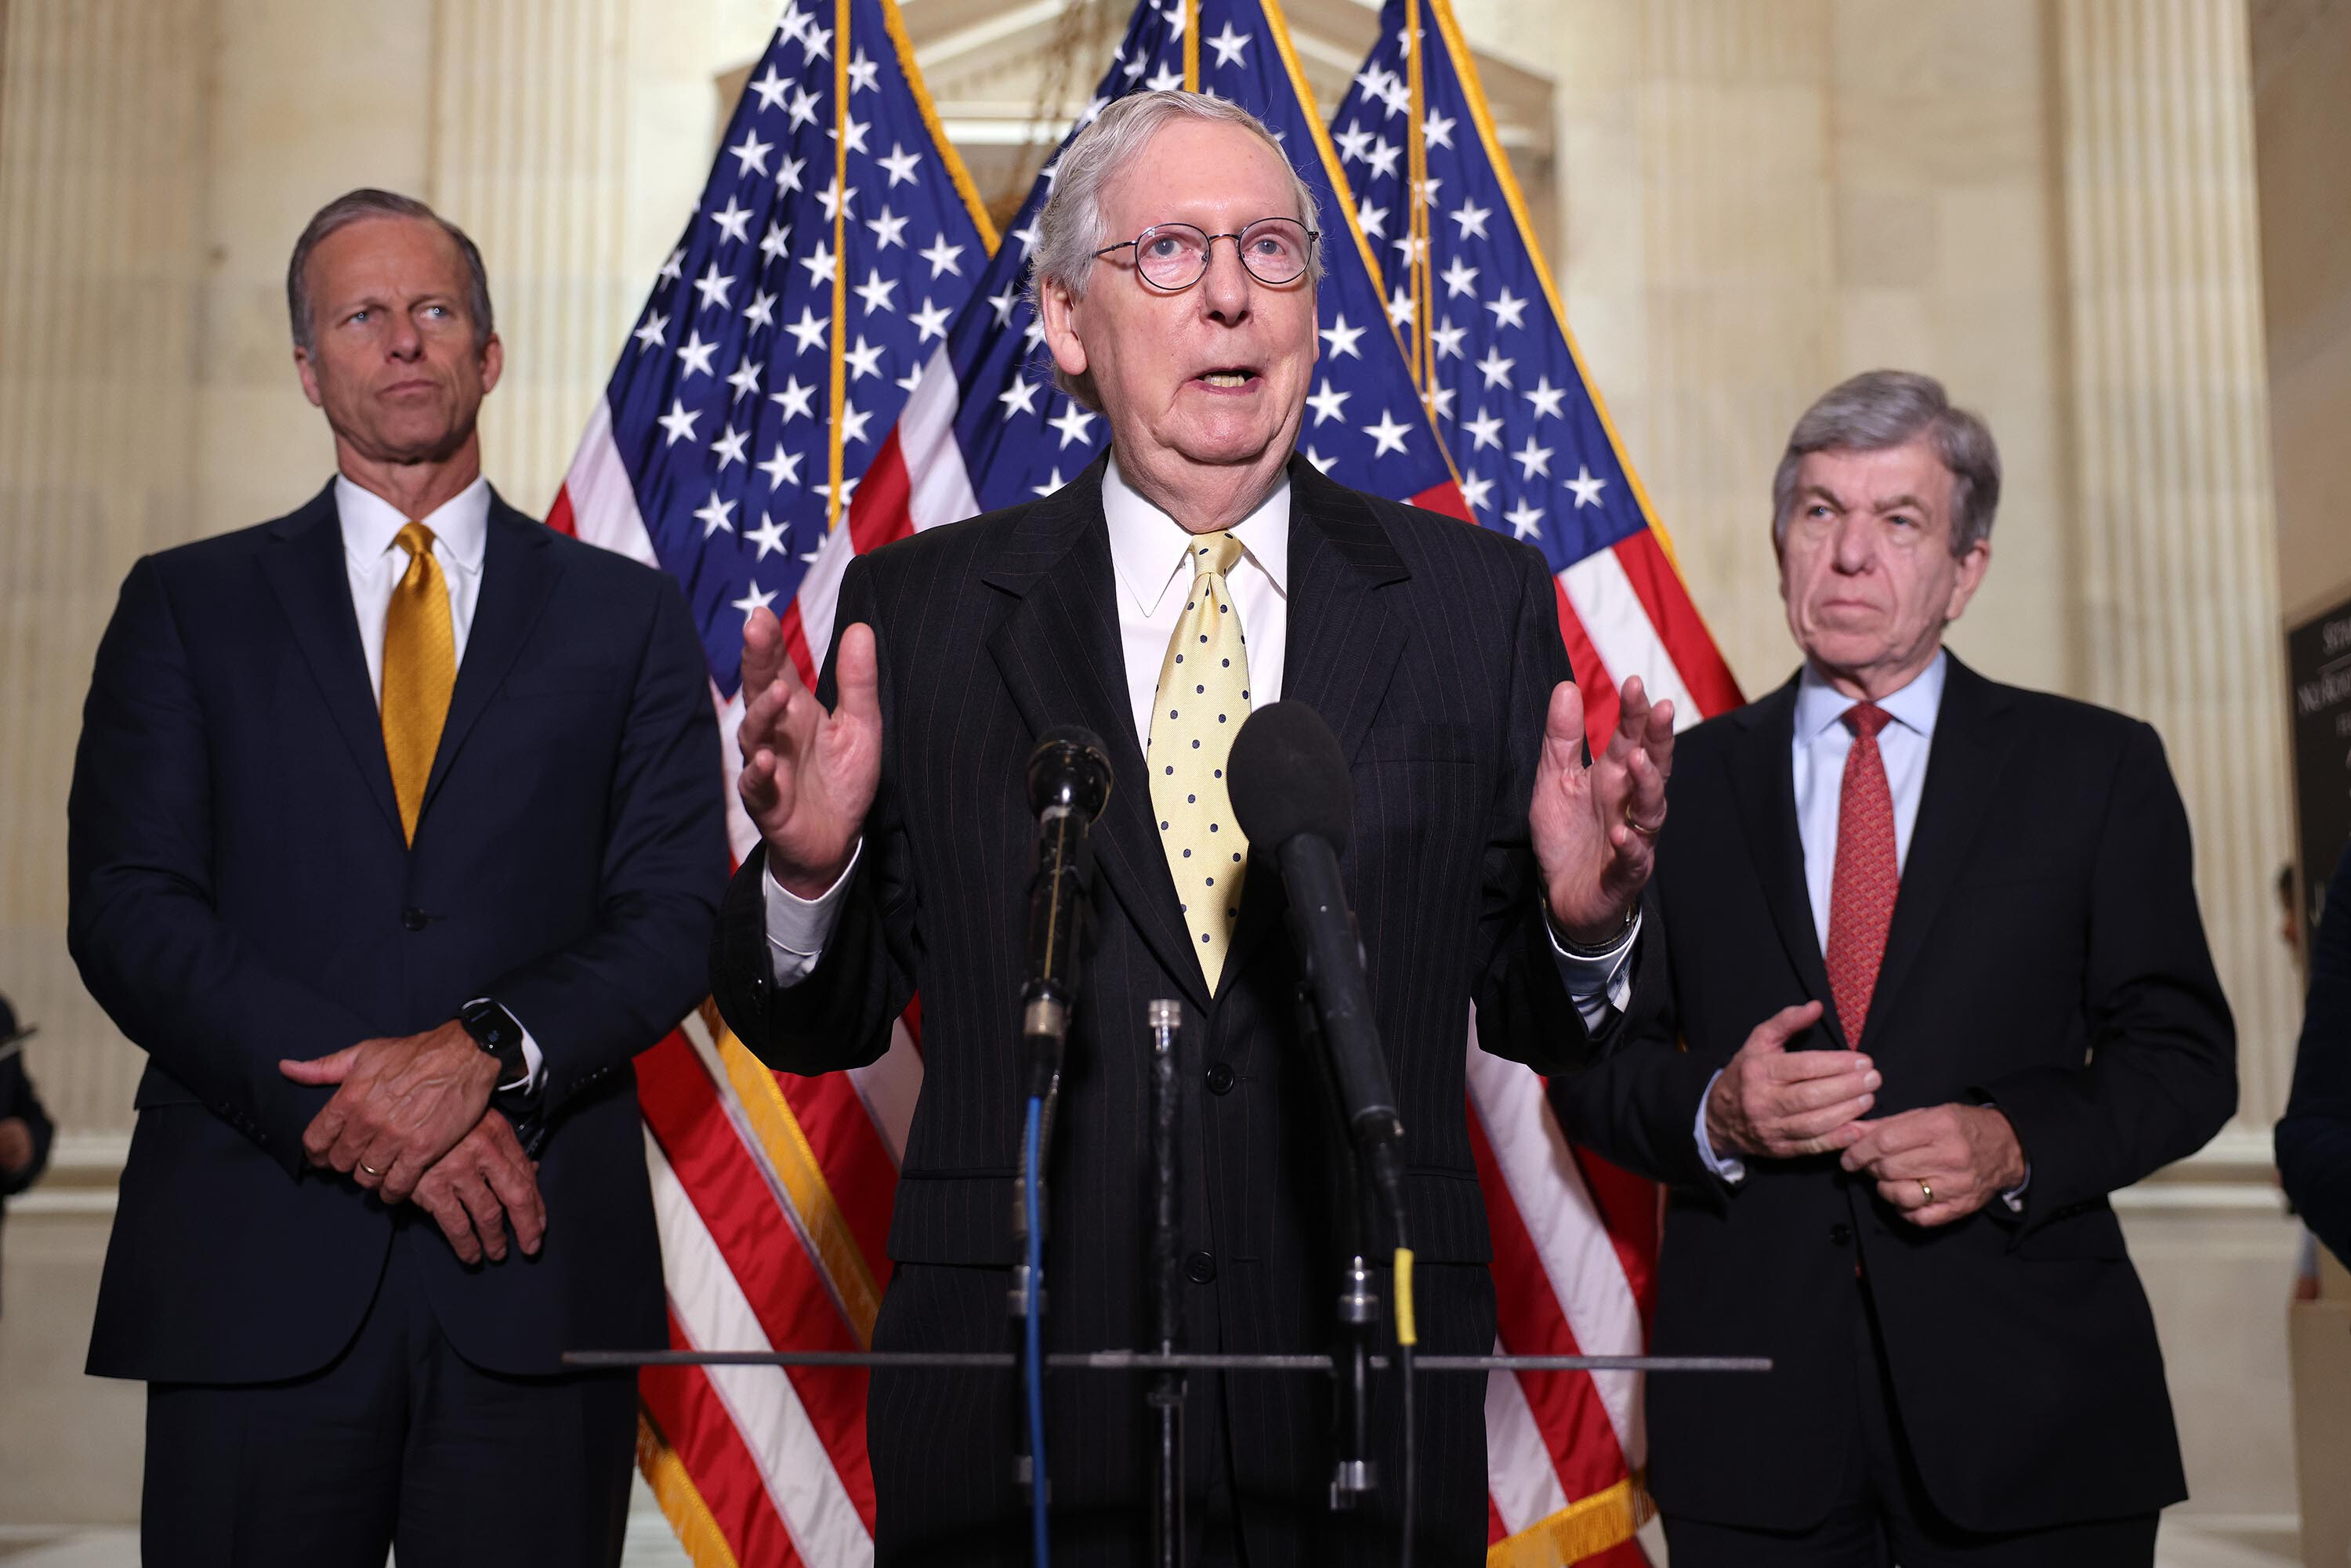 McConnell says GOP will not vote to raise debt ceiling, setting up clash in Congress